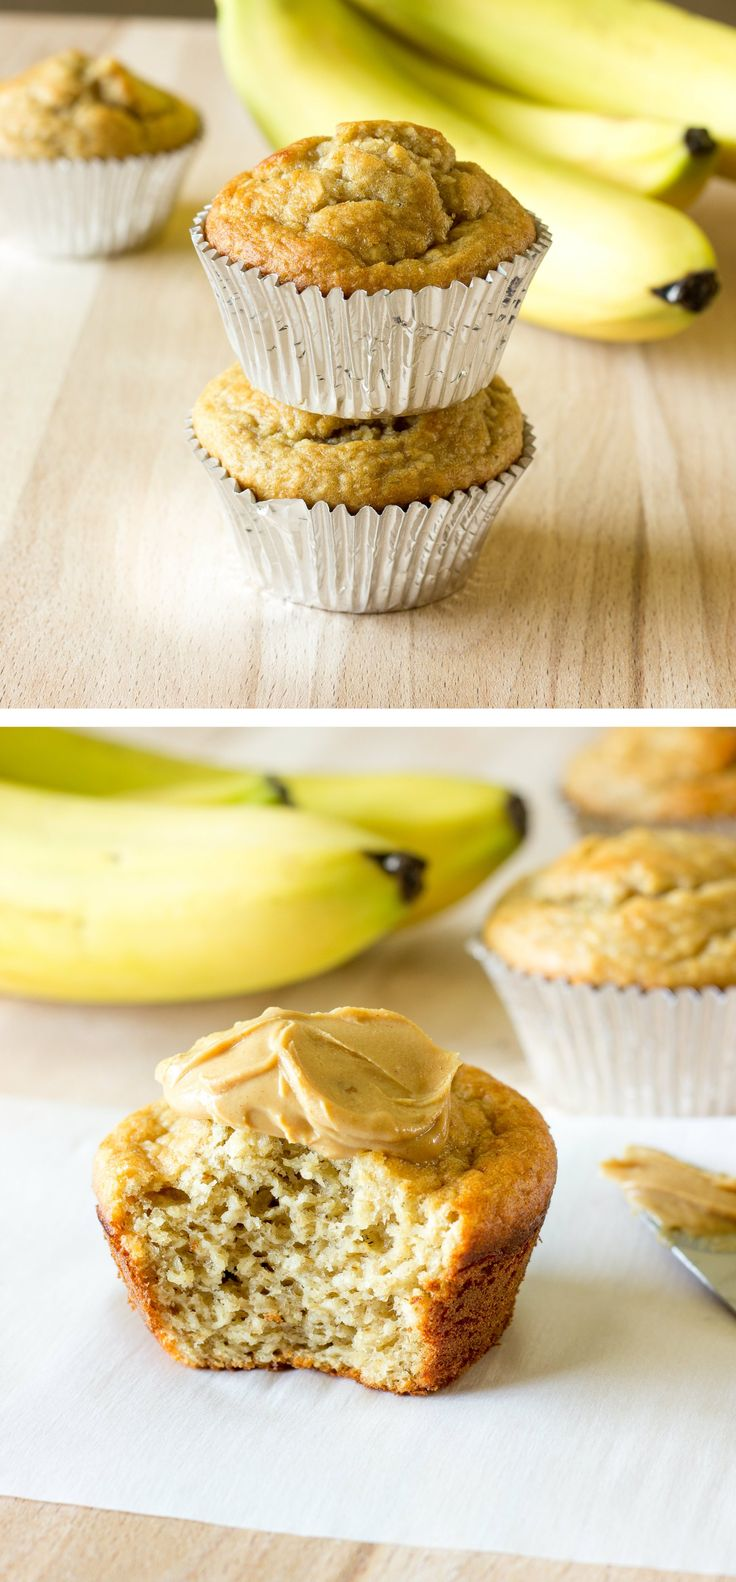 GF. No flour or oil. These muffins are made with Greek yogurt